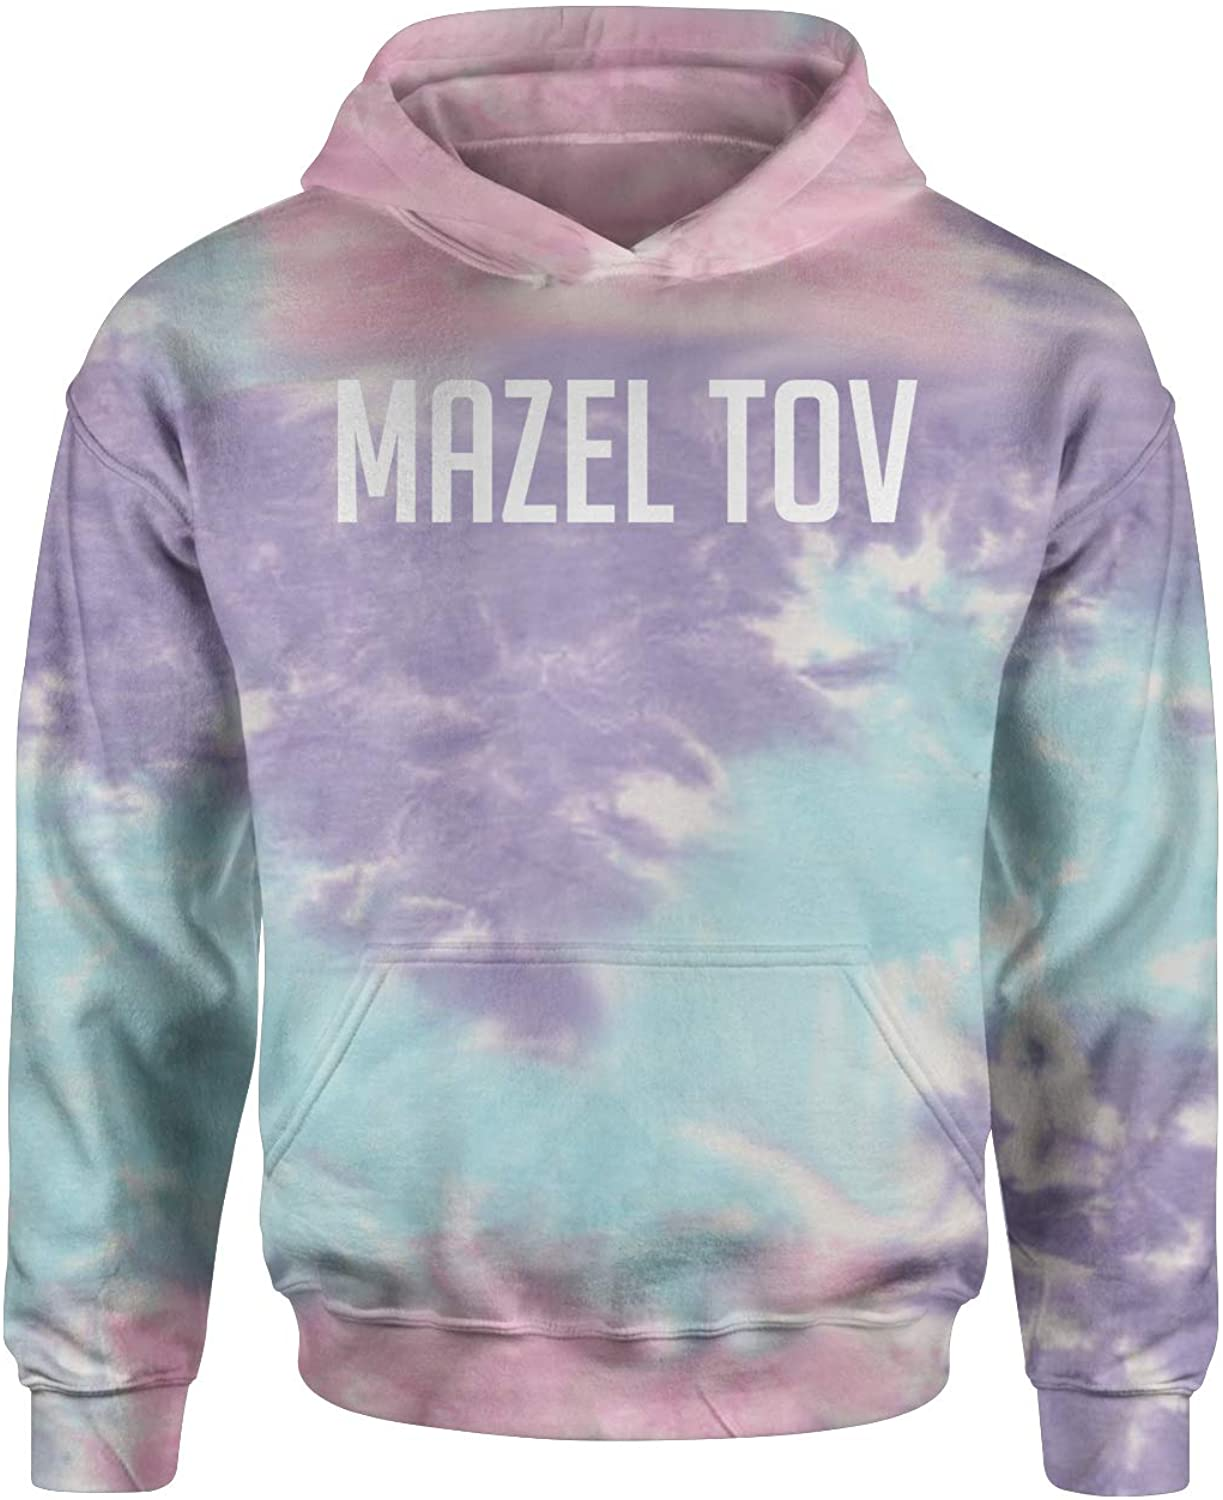 Expression Tees Mazel Tov Tie-Dye Youth-Sized Hoodie